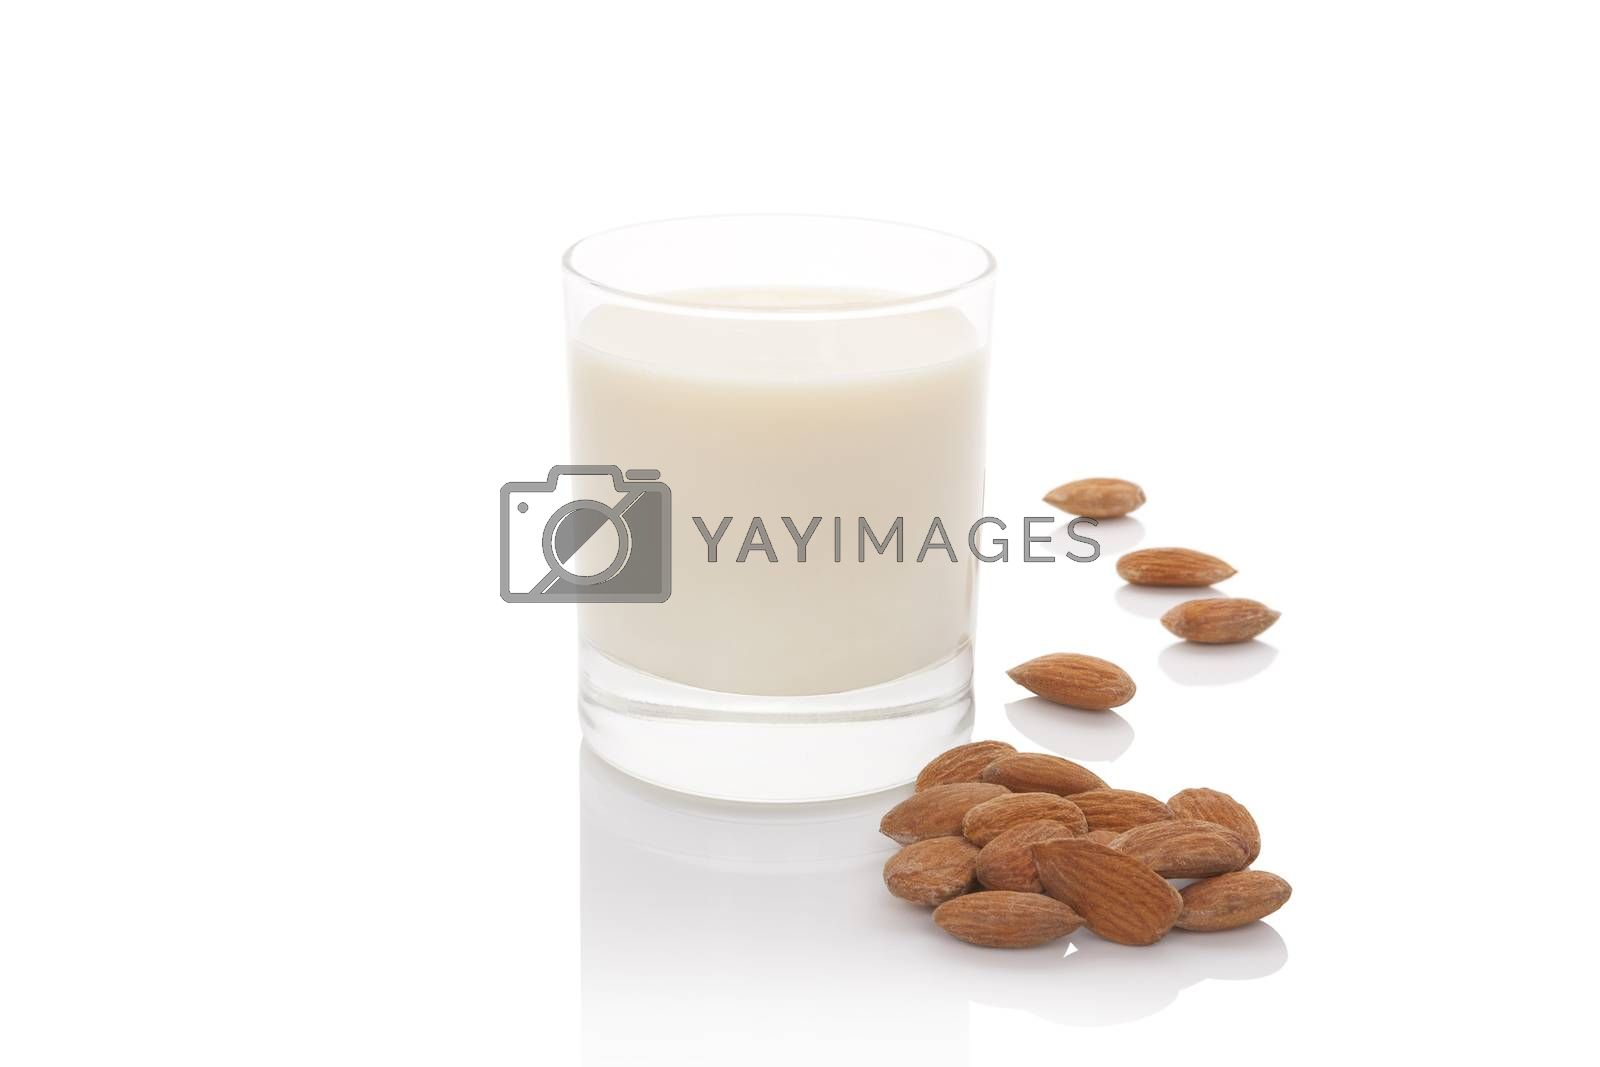 Almond milk in glass with almond nuts isolated on white background. Vegan and vegetarian milk concept.